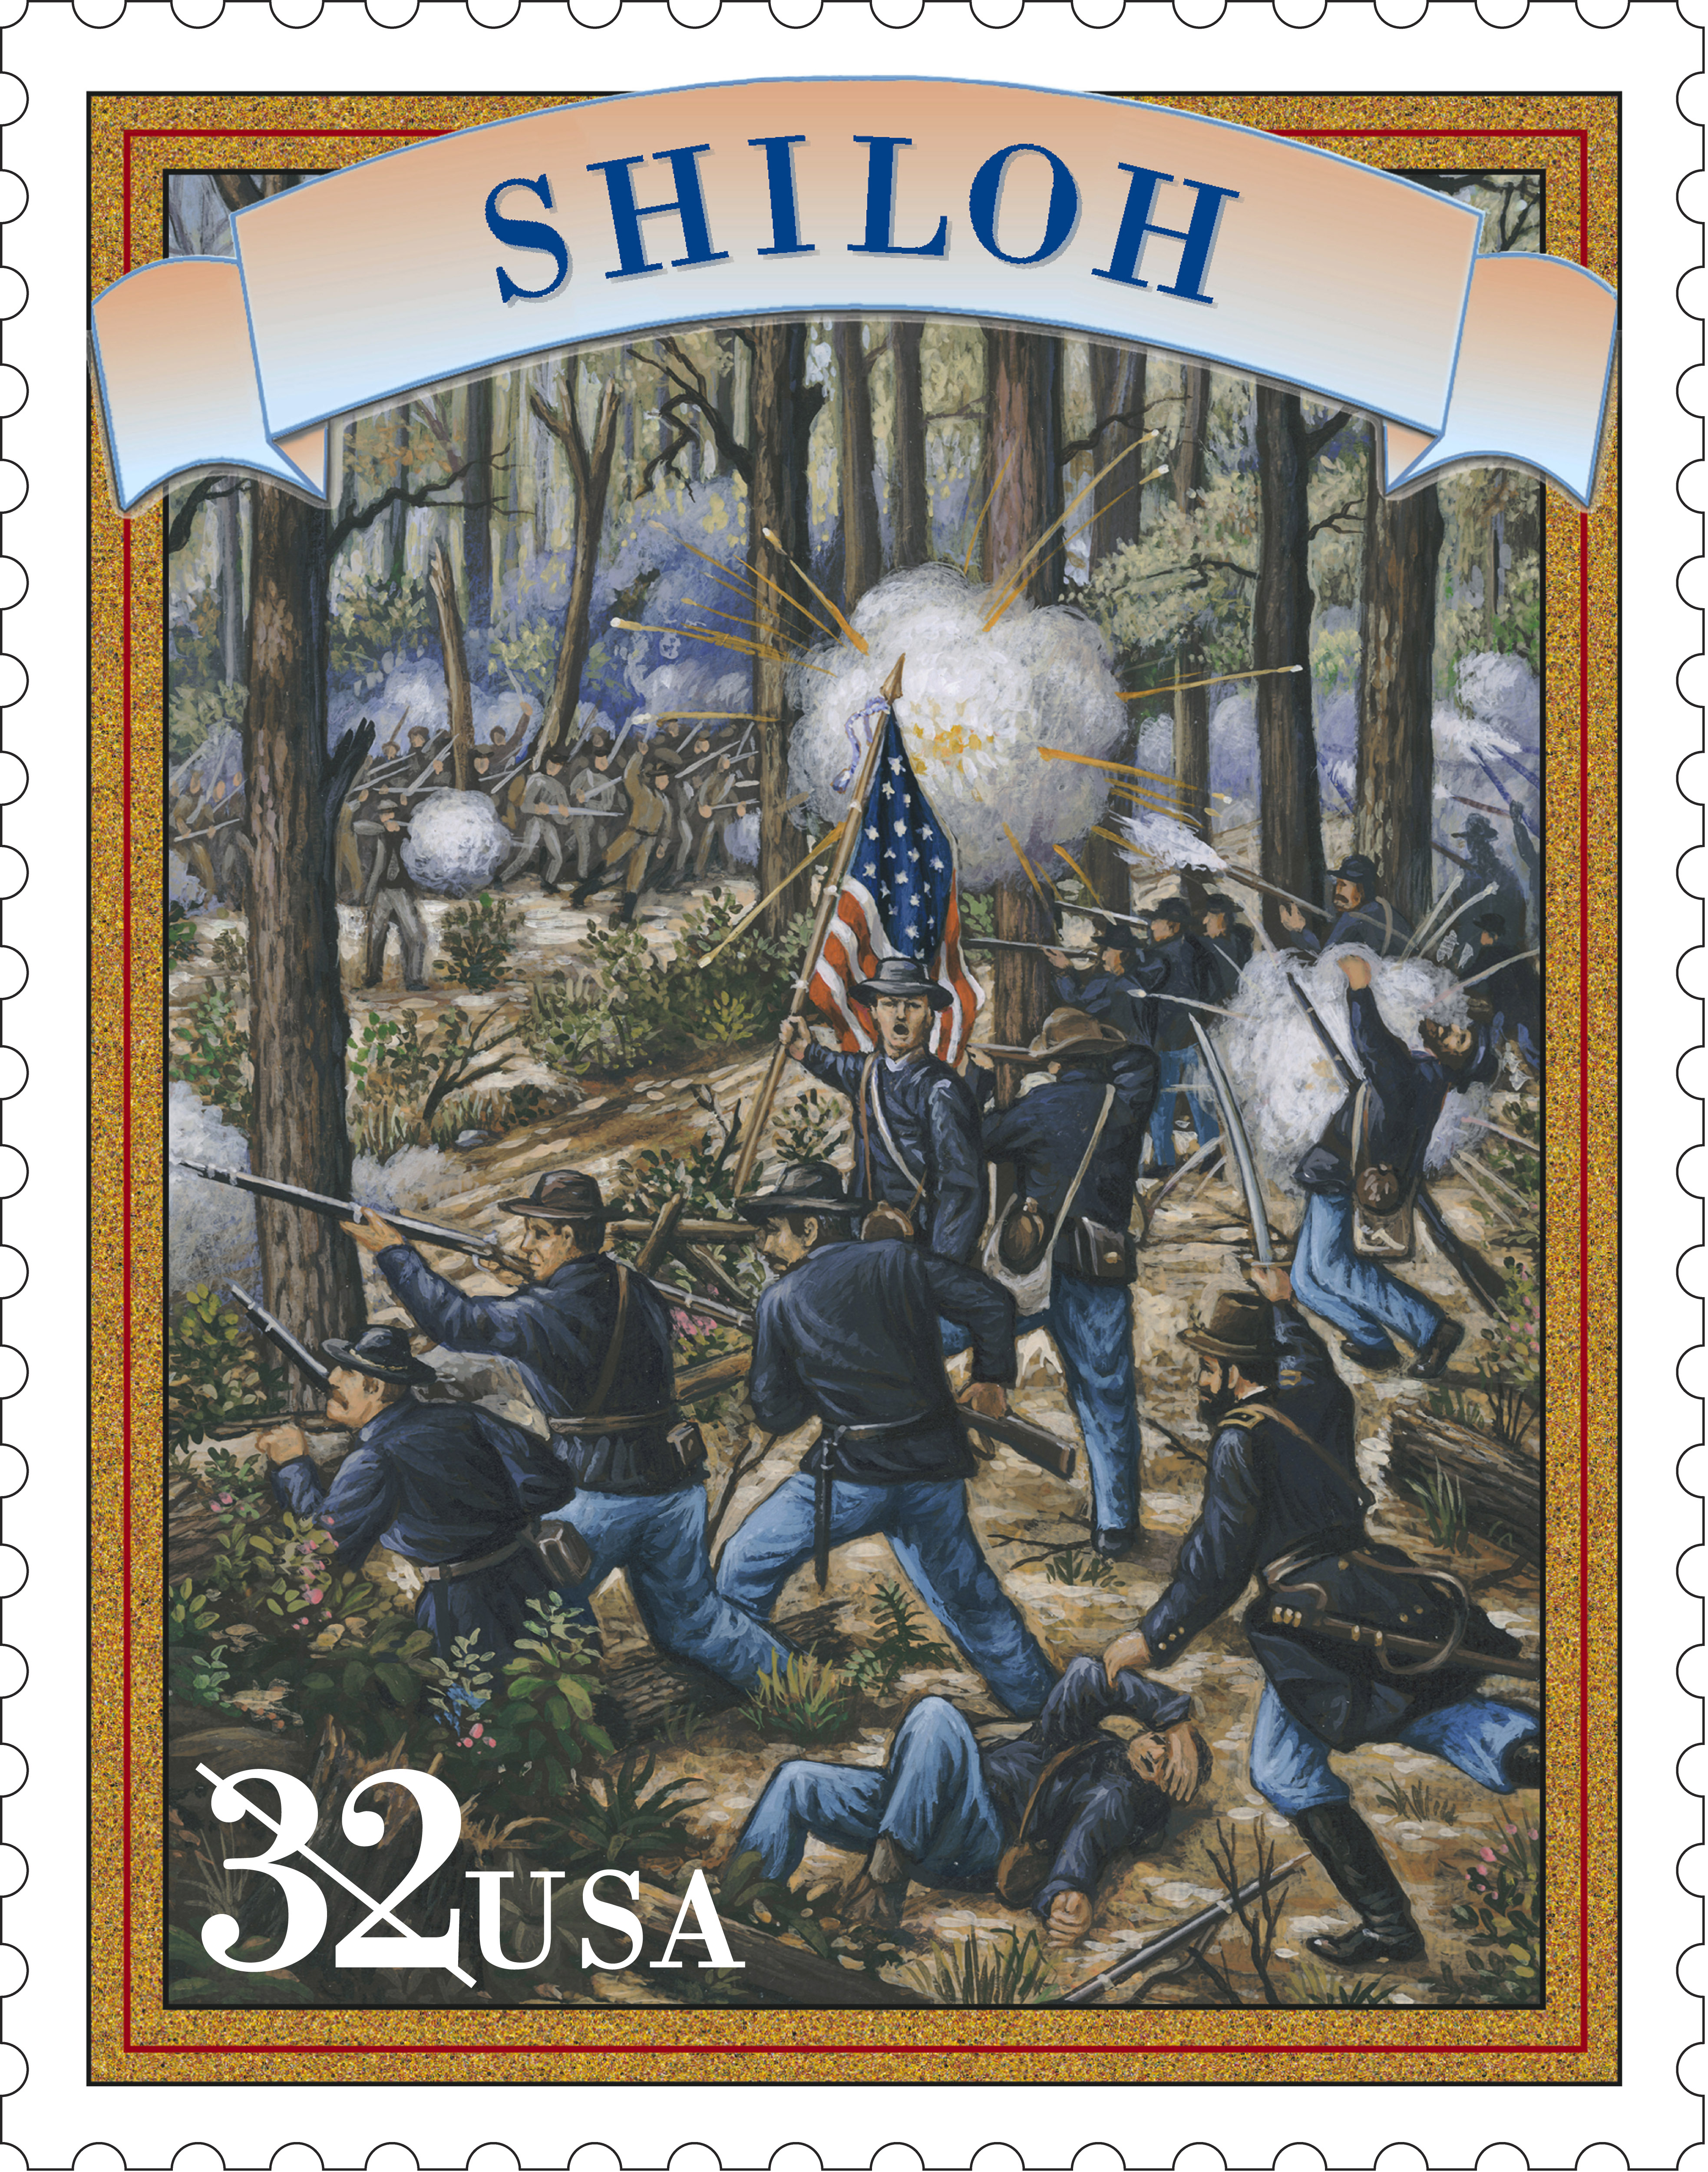 an overview of the infamous battle of shiloh in 1862 Also known as the battle of pittsburg landing, the battle of shiloh took place from april 6 to april 7, 1862, and was one of the major early engagements of the american civil war (1861-65) the.